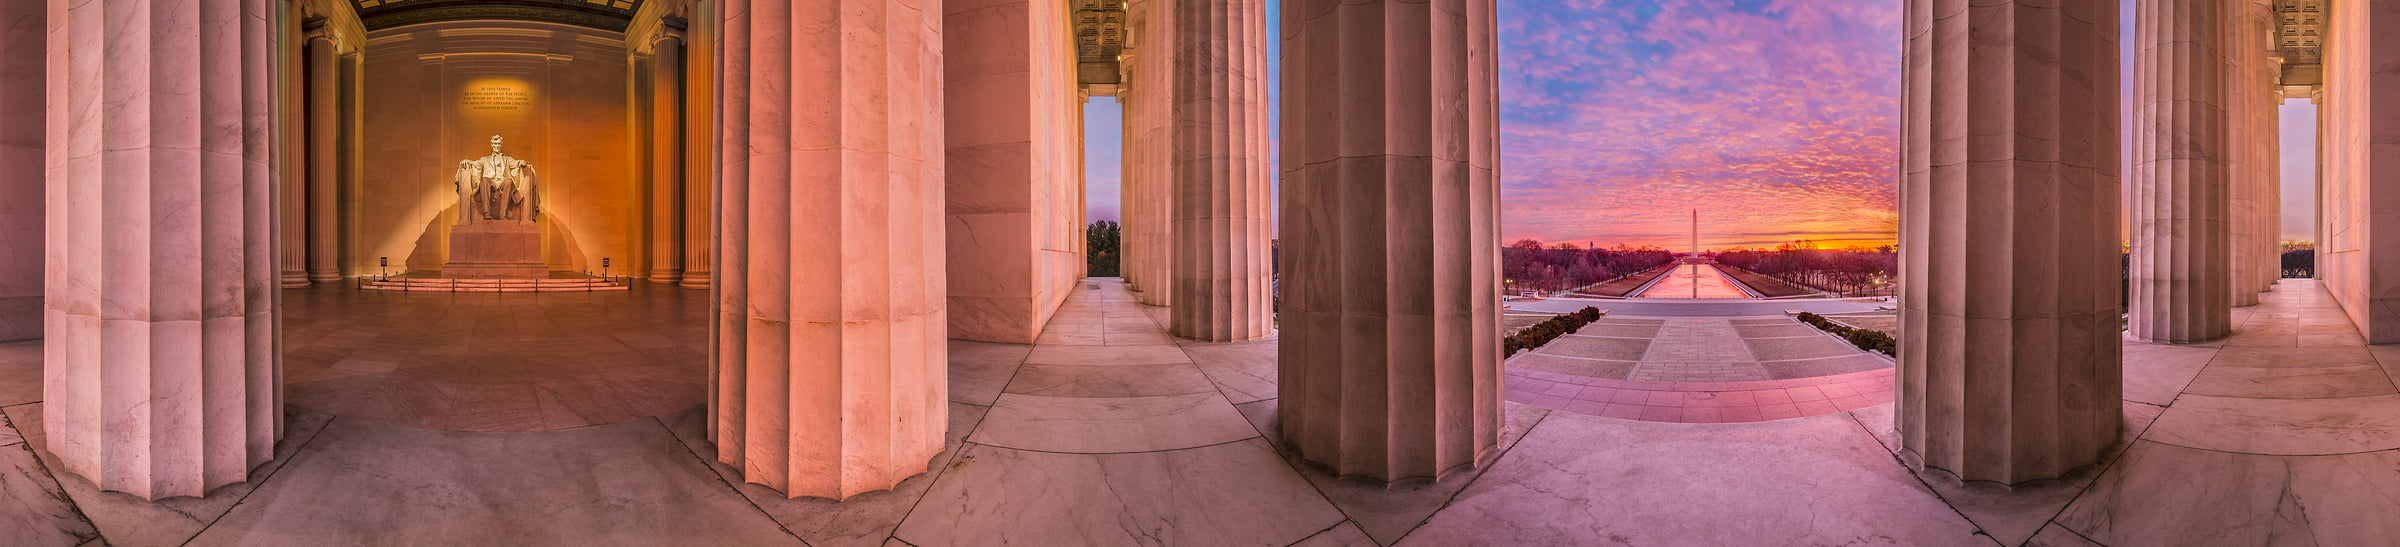 220 megapixels! A very high resolution, large-format VAST photo of the Lincoln Memorial and the National Mall at sunrise; 360-degree panorama photograph created by Tim Lo Monaco in Washington, D.C.